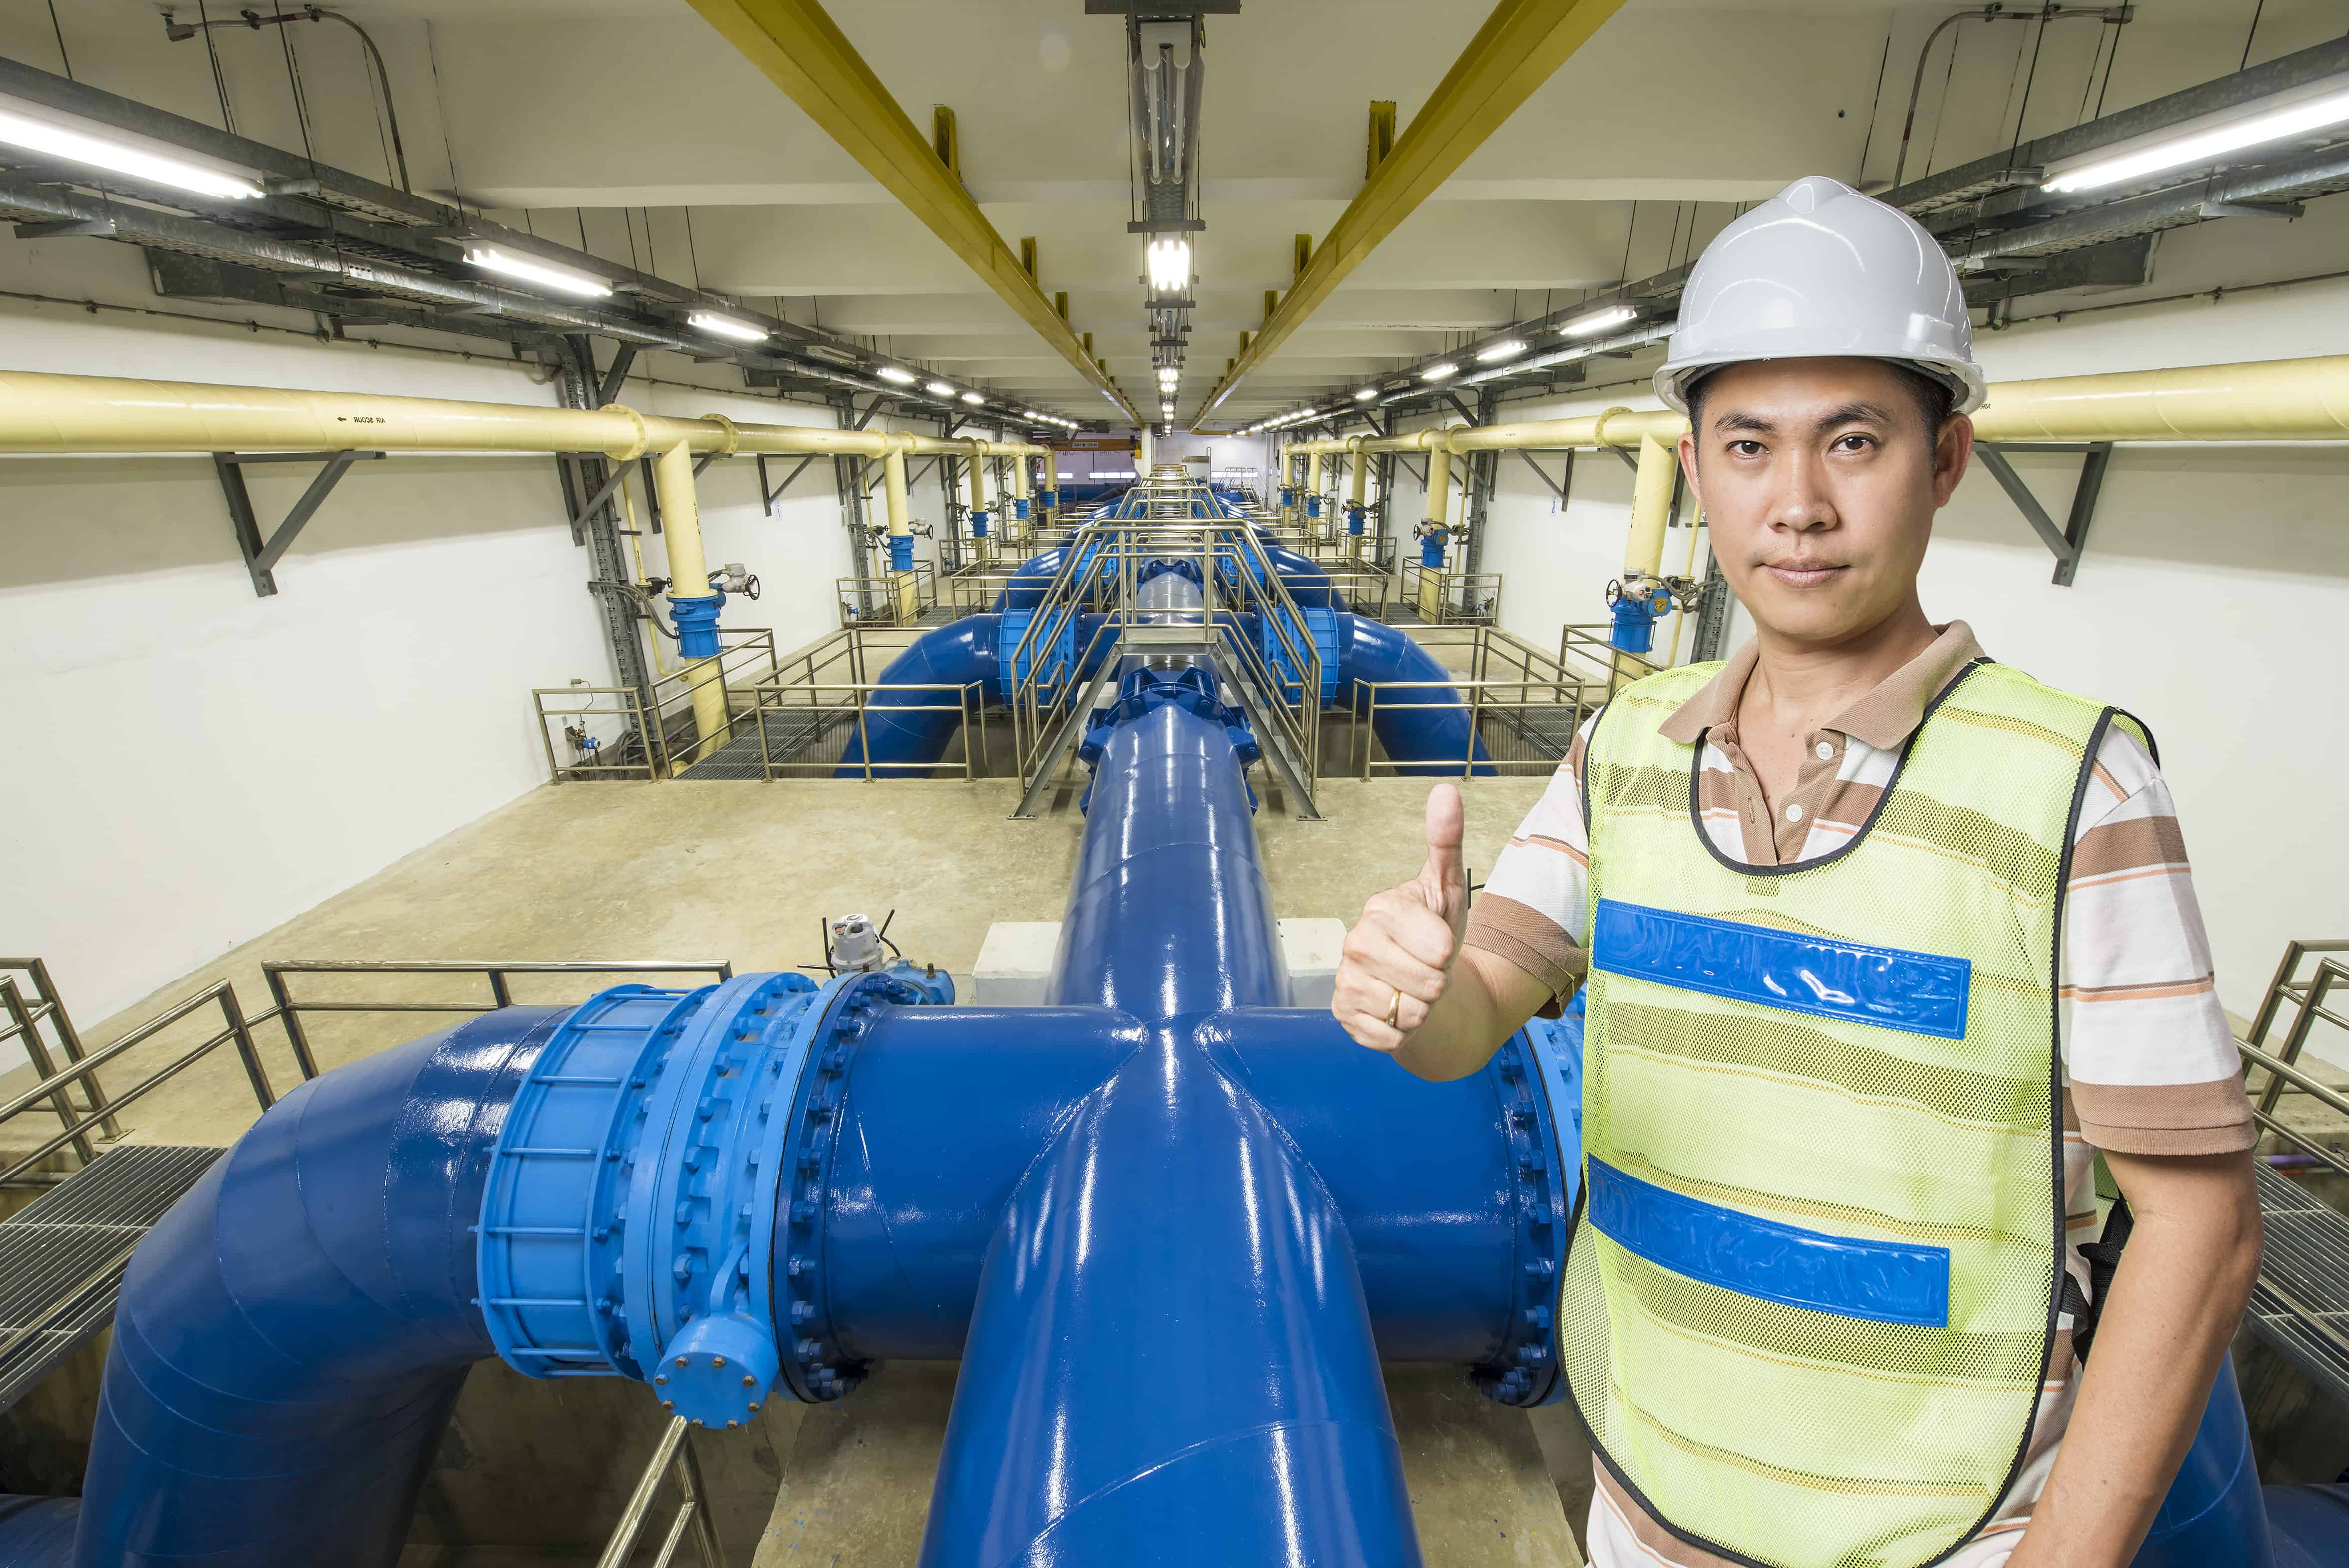 Balmain wastewater station complete